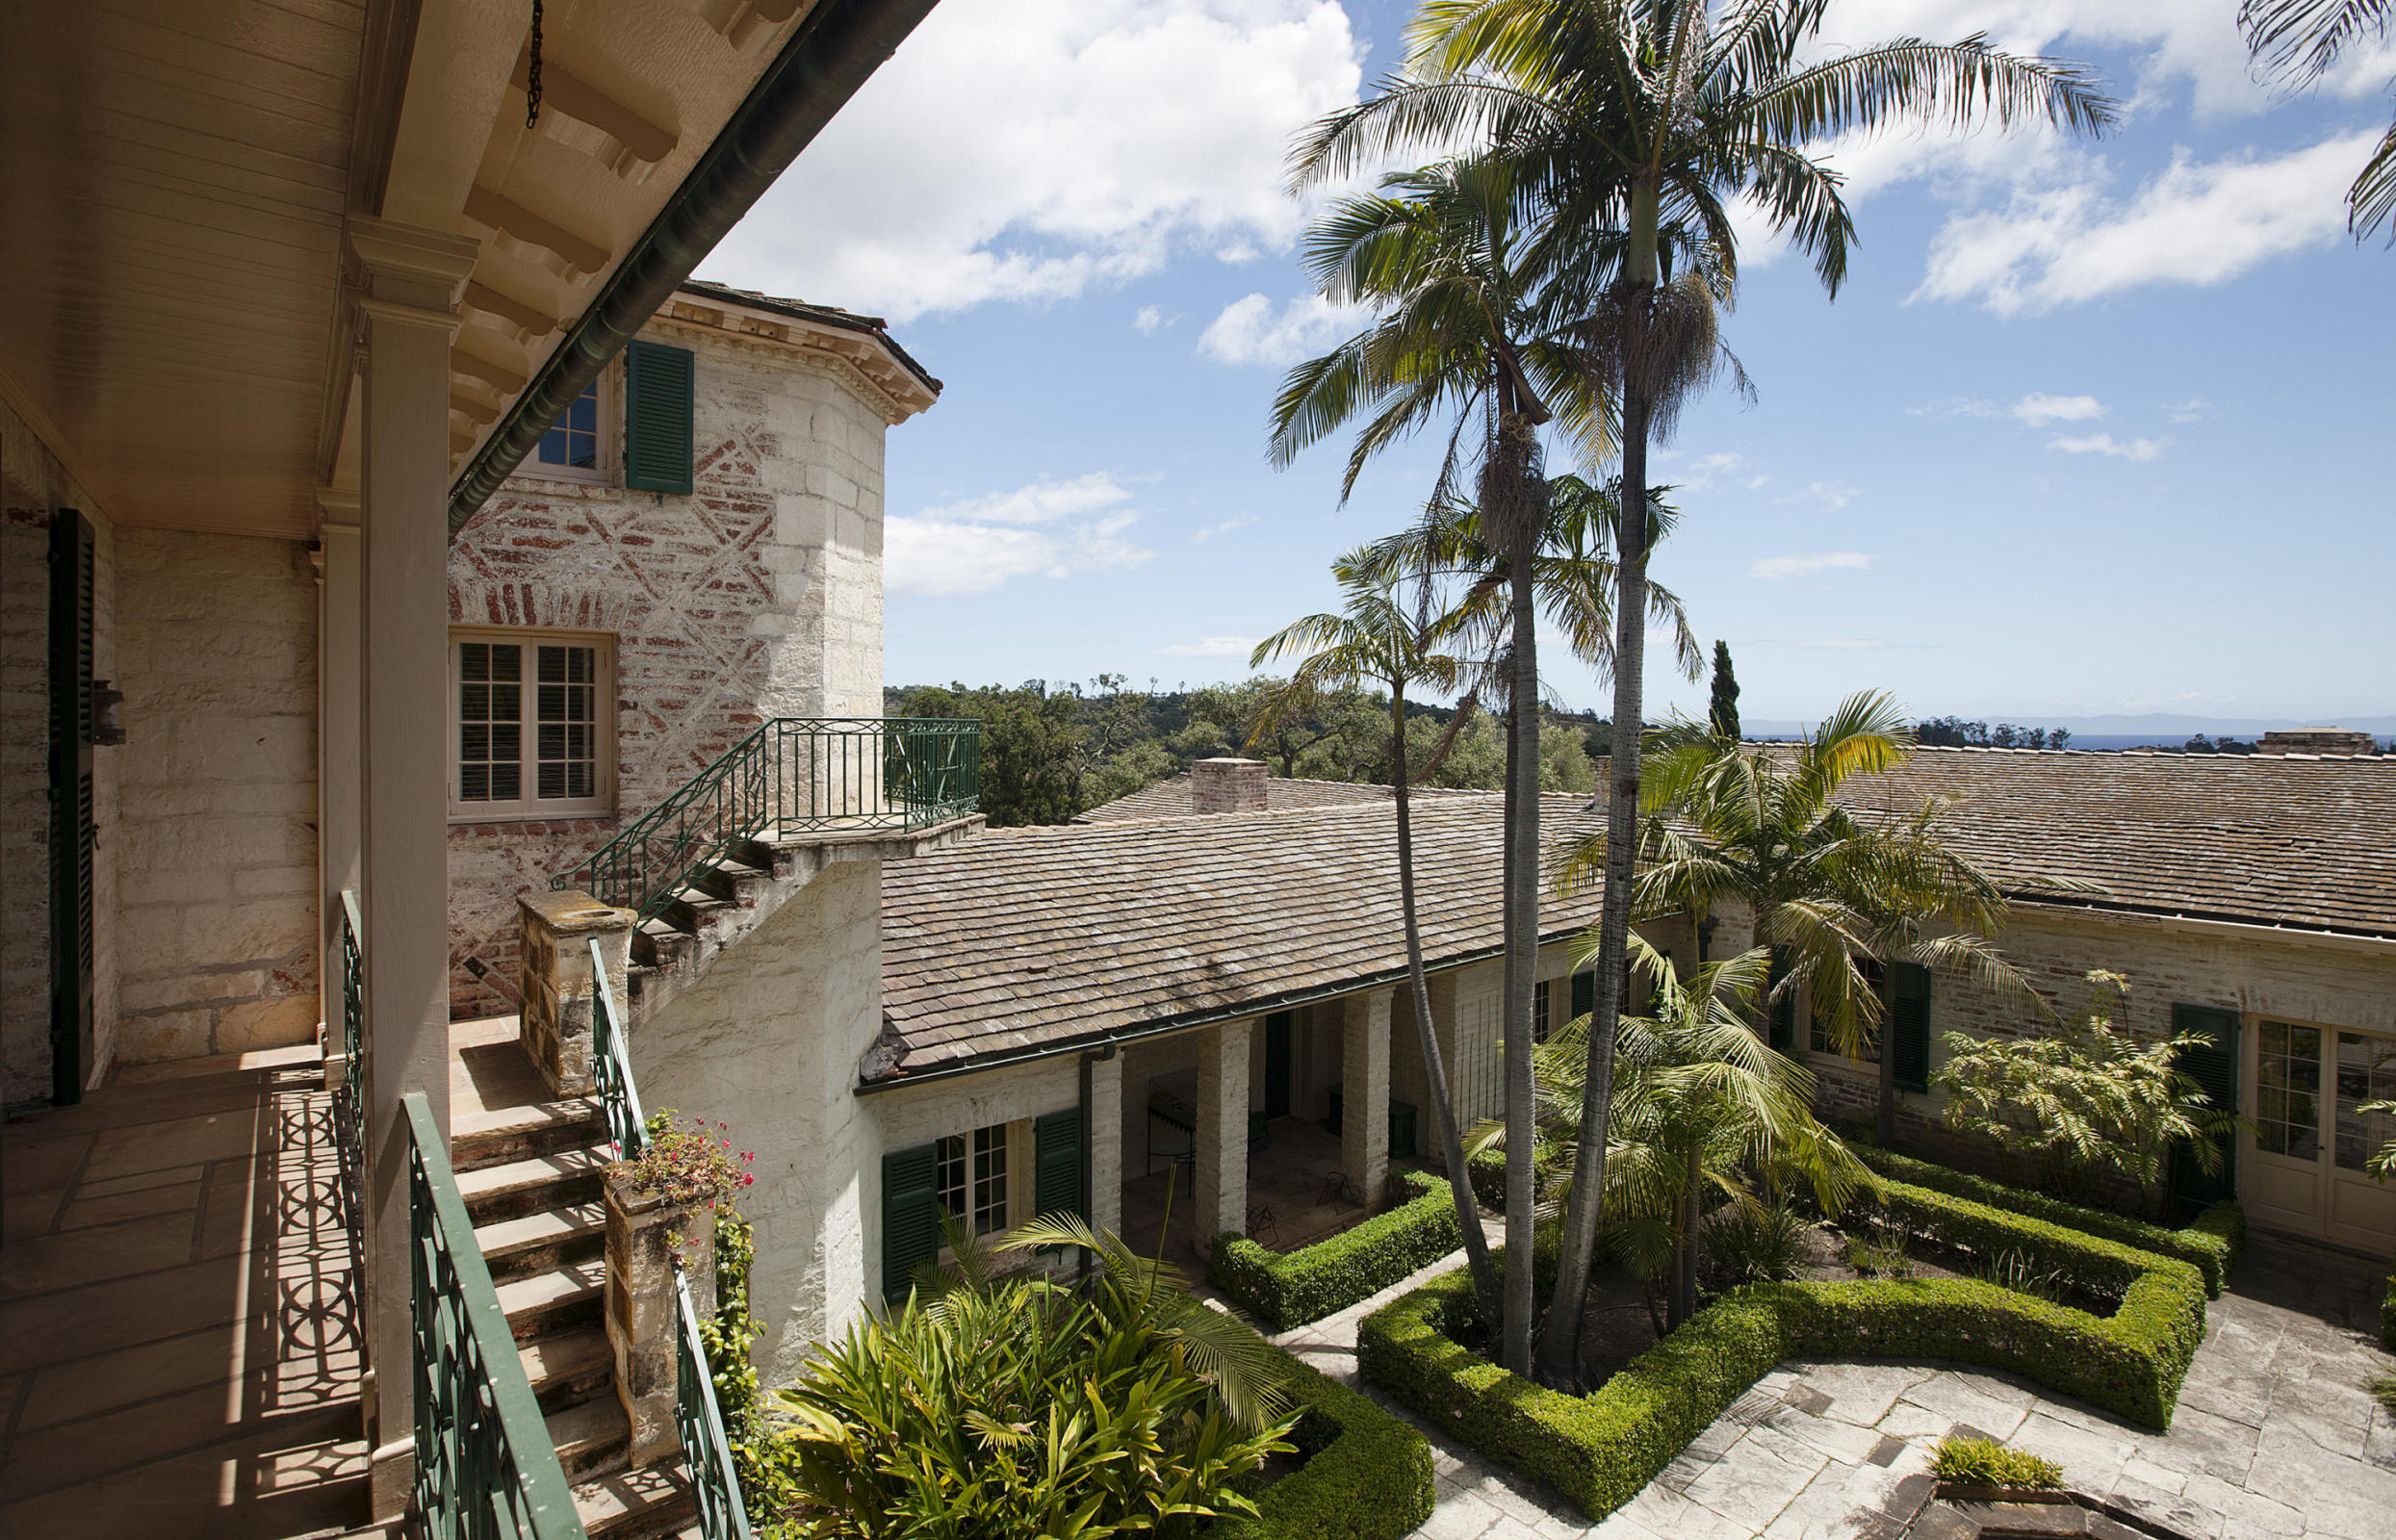 Source: www.SuzannePerkins.com Listed by Suzanne Perkins of Sotheby's International